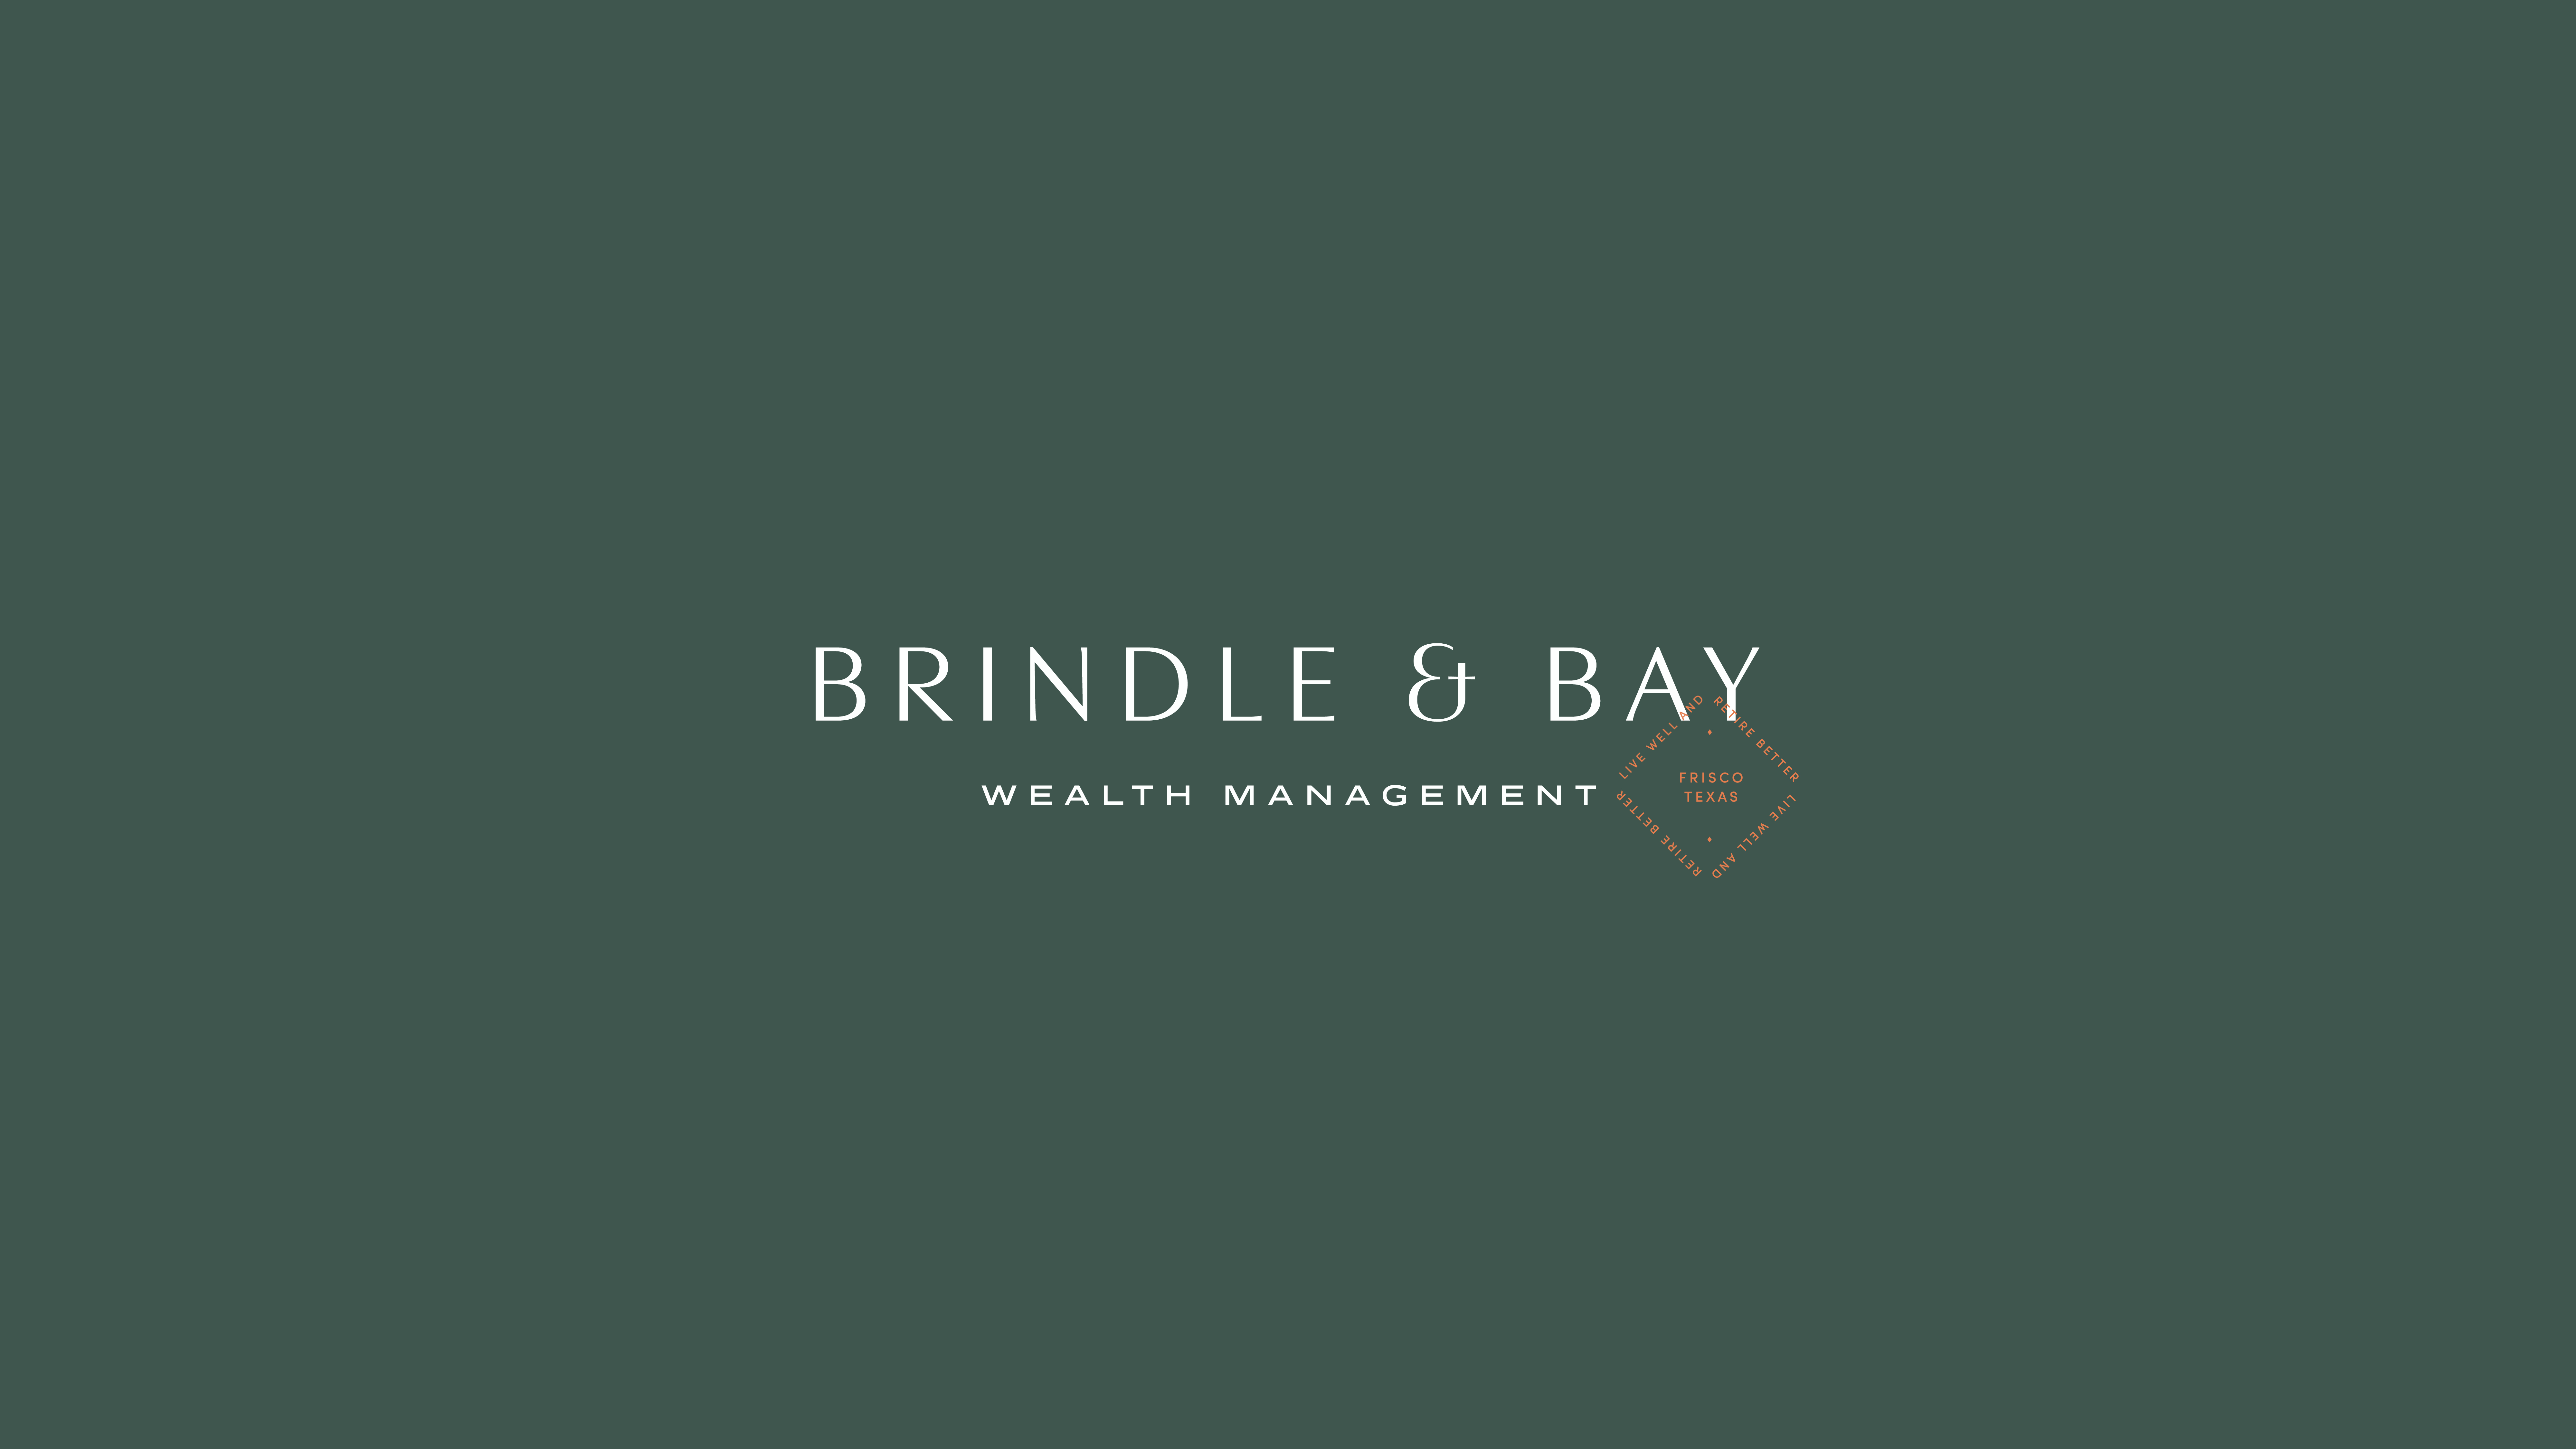 Brindle & Bay logo with stamp